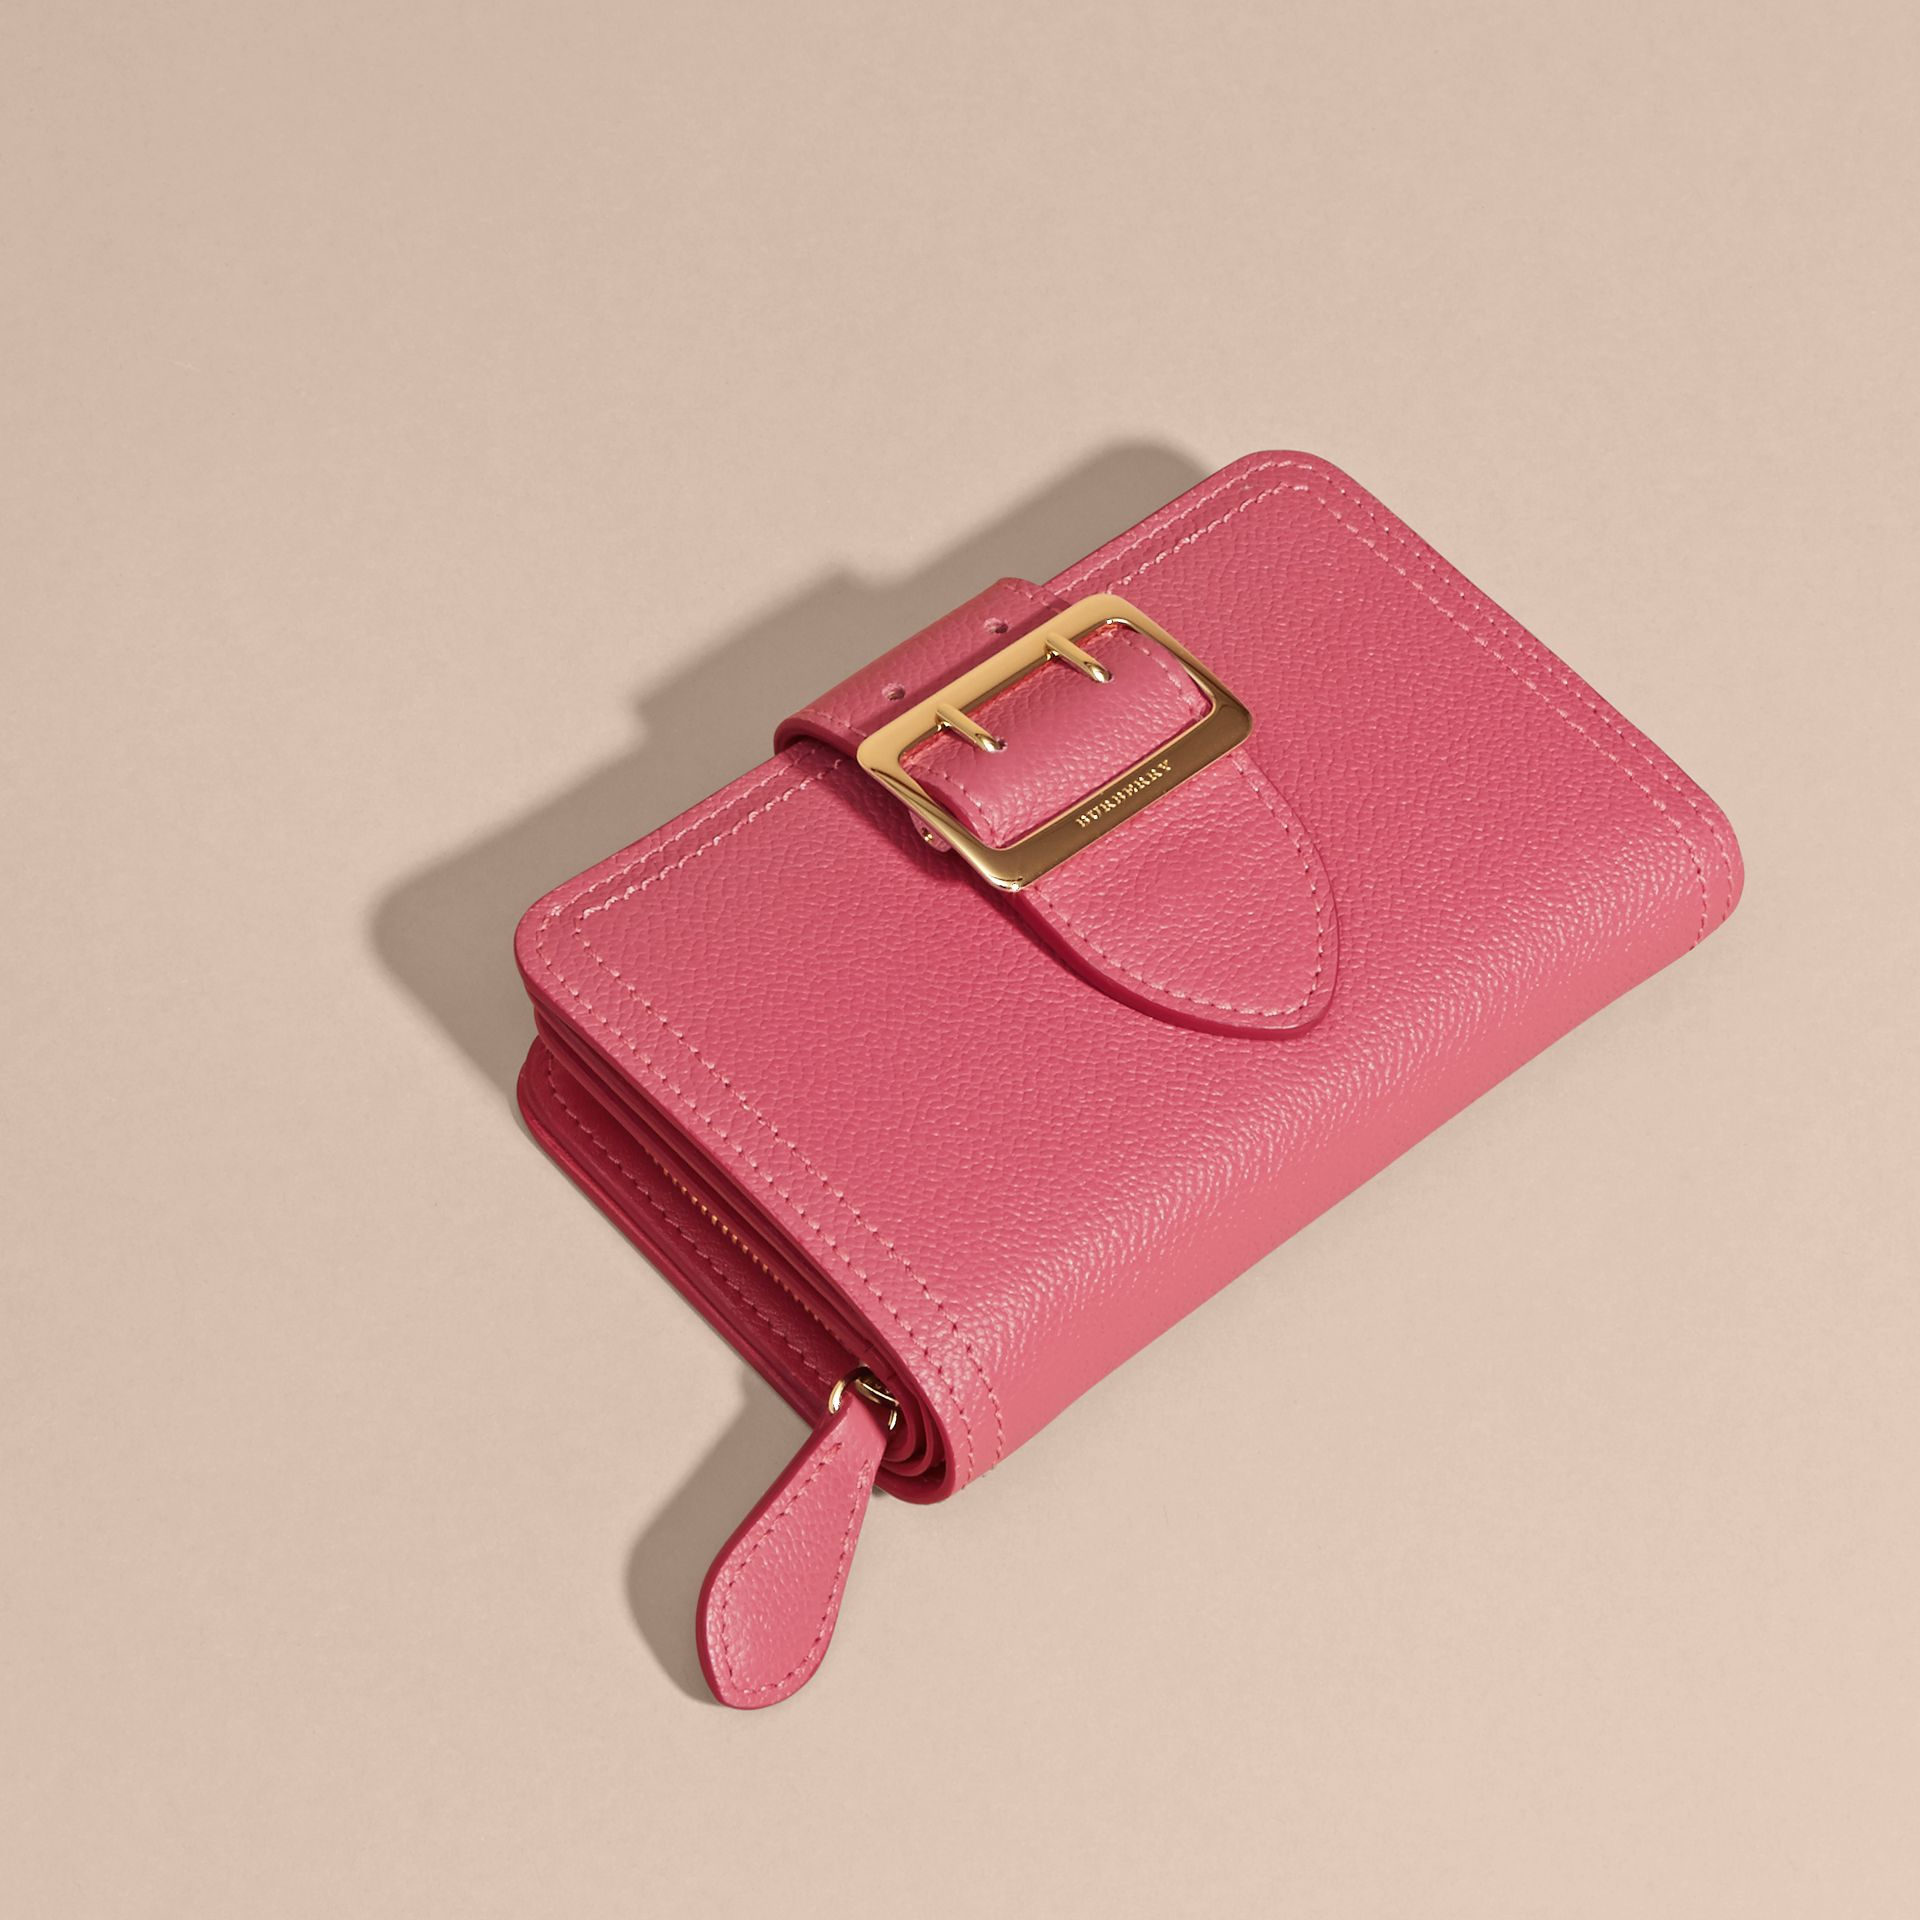 Pink azalea Buckle Detail Grainy Leather Wallet Pink Azalea - gallery image 3